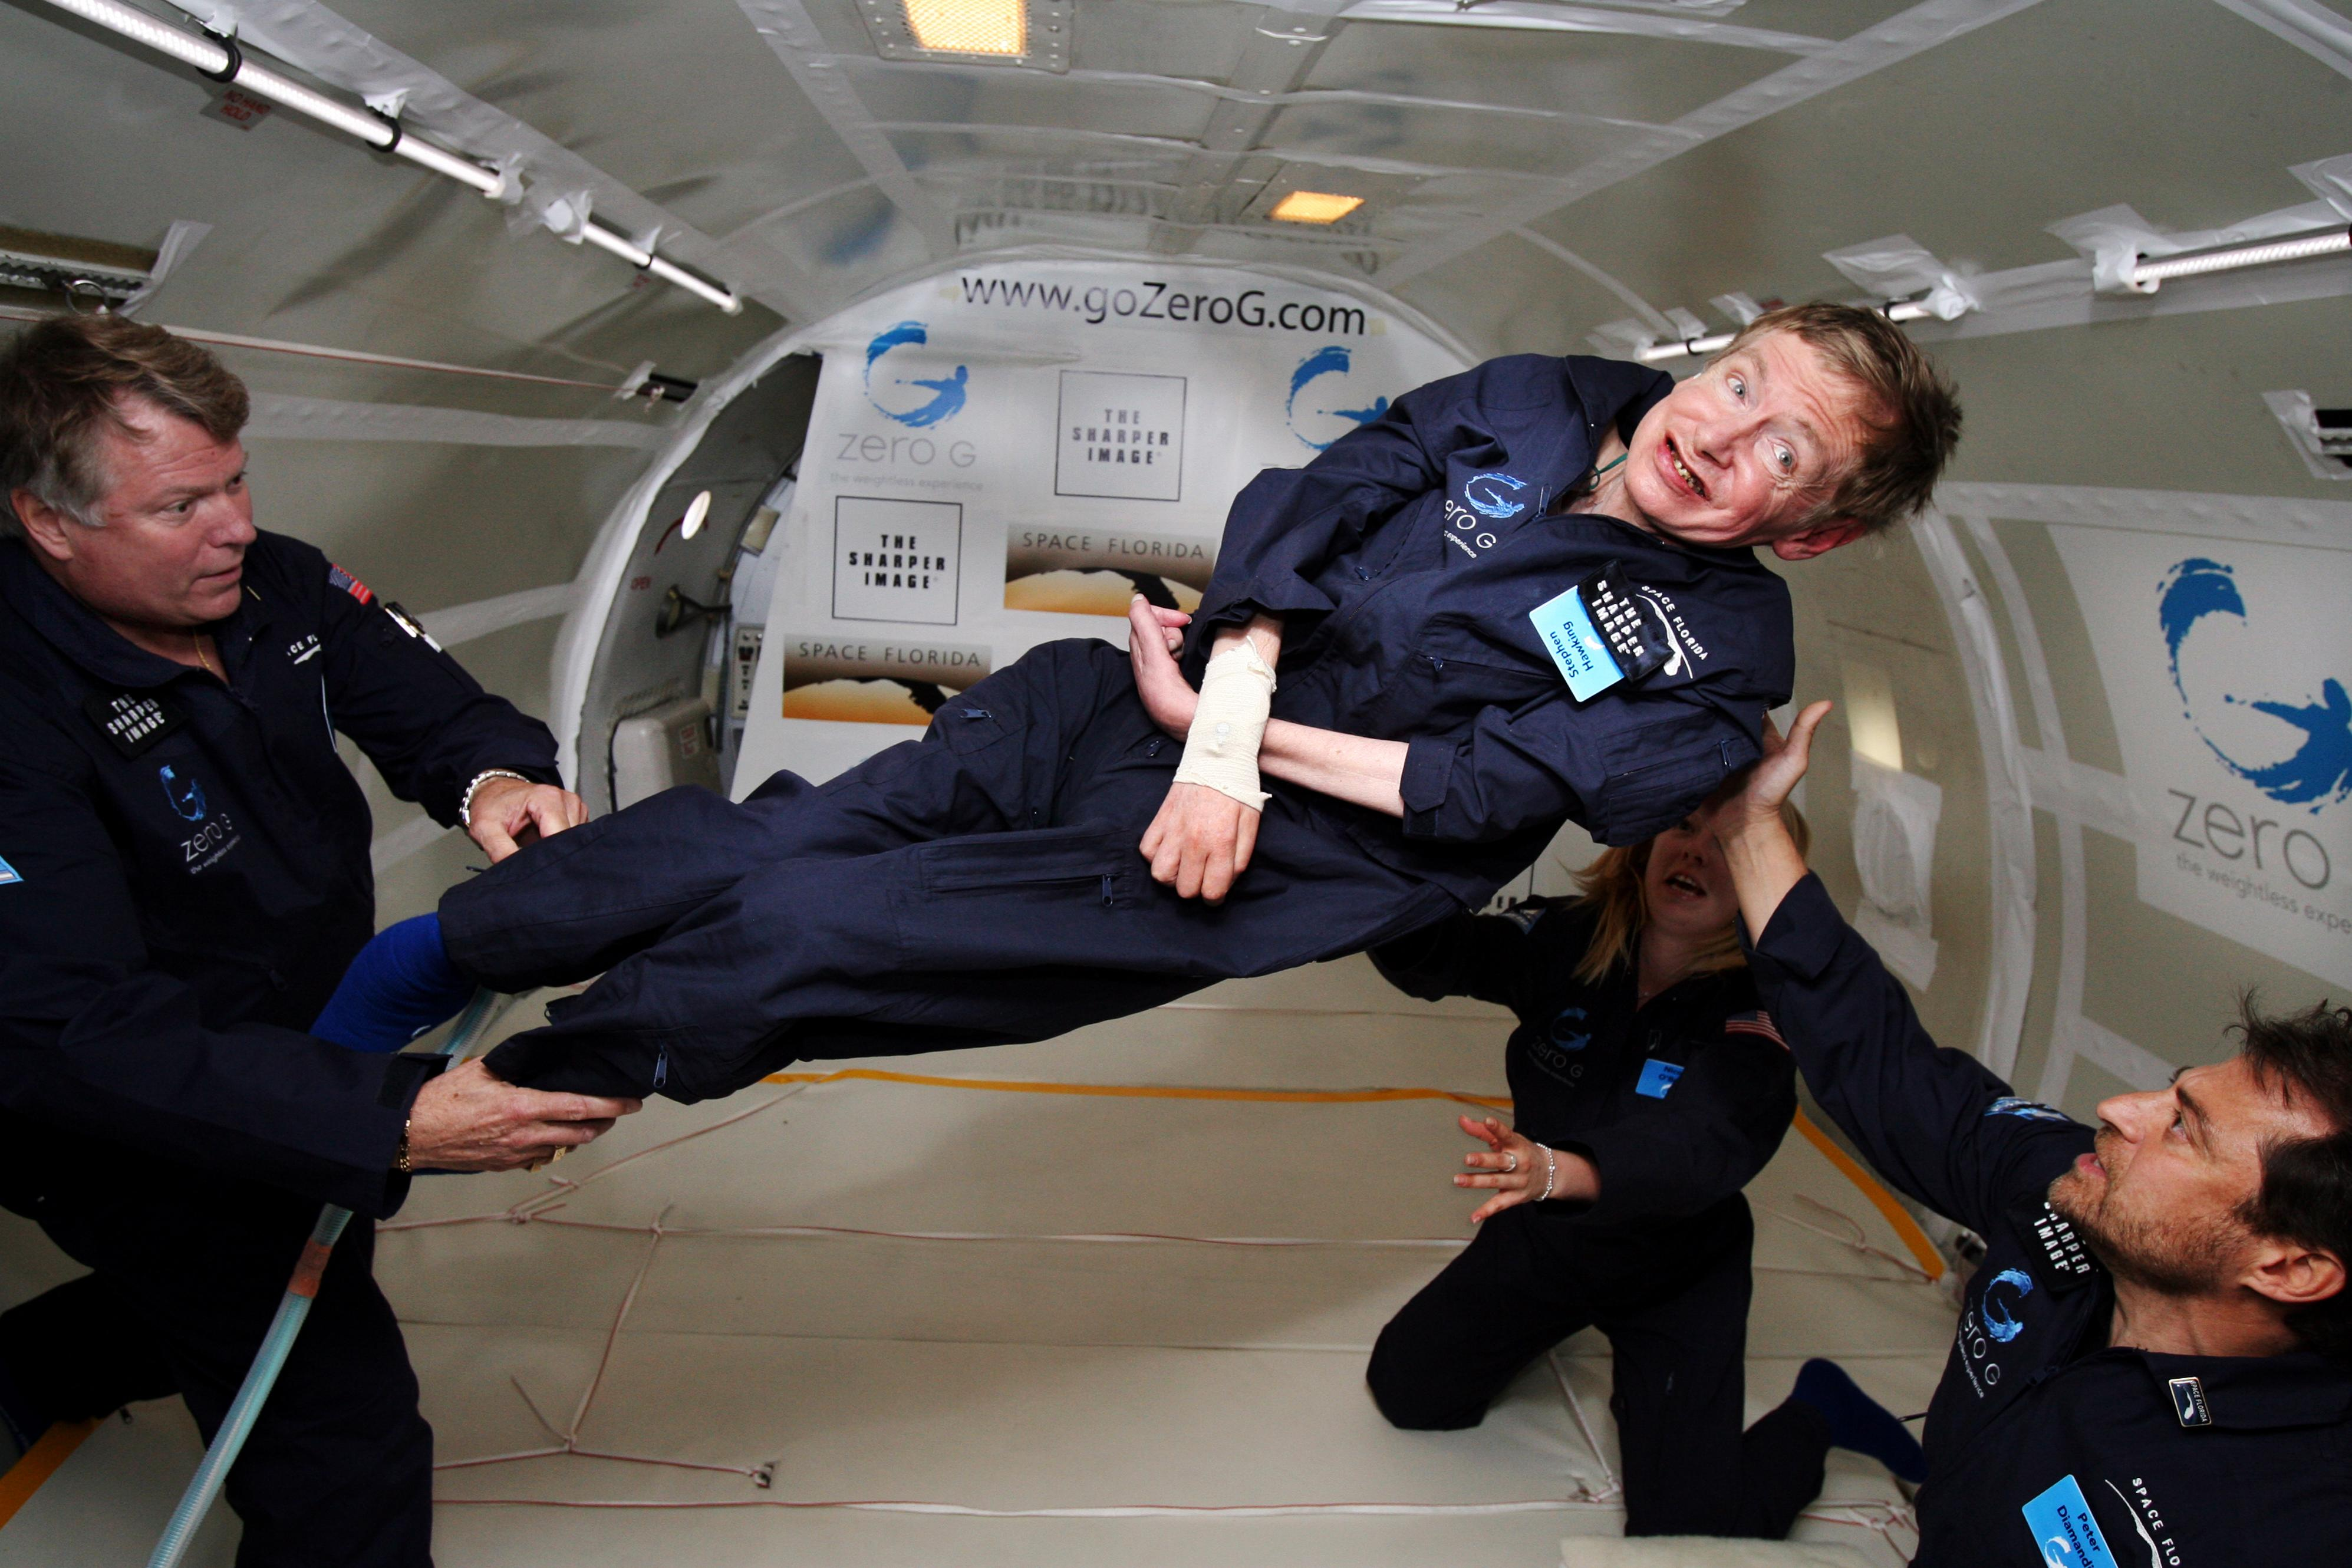 źródło: http://upload.wikimedia.org/wikipedia/commons/0/08/Physicist_Stephen_Hawking_in_Zero_Gravity_NASA.jpg